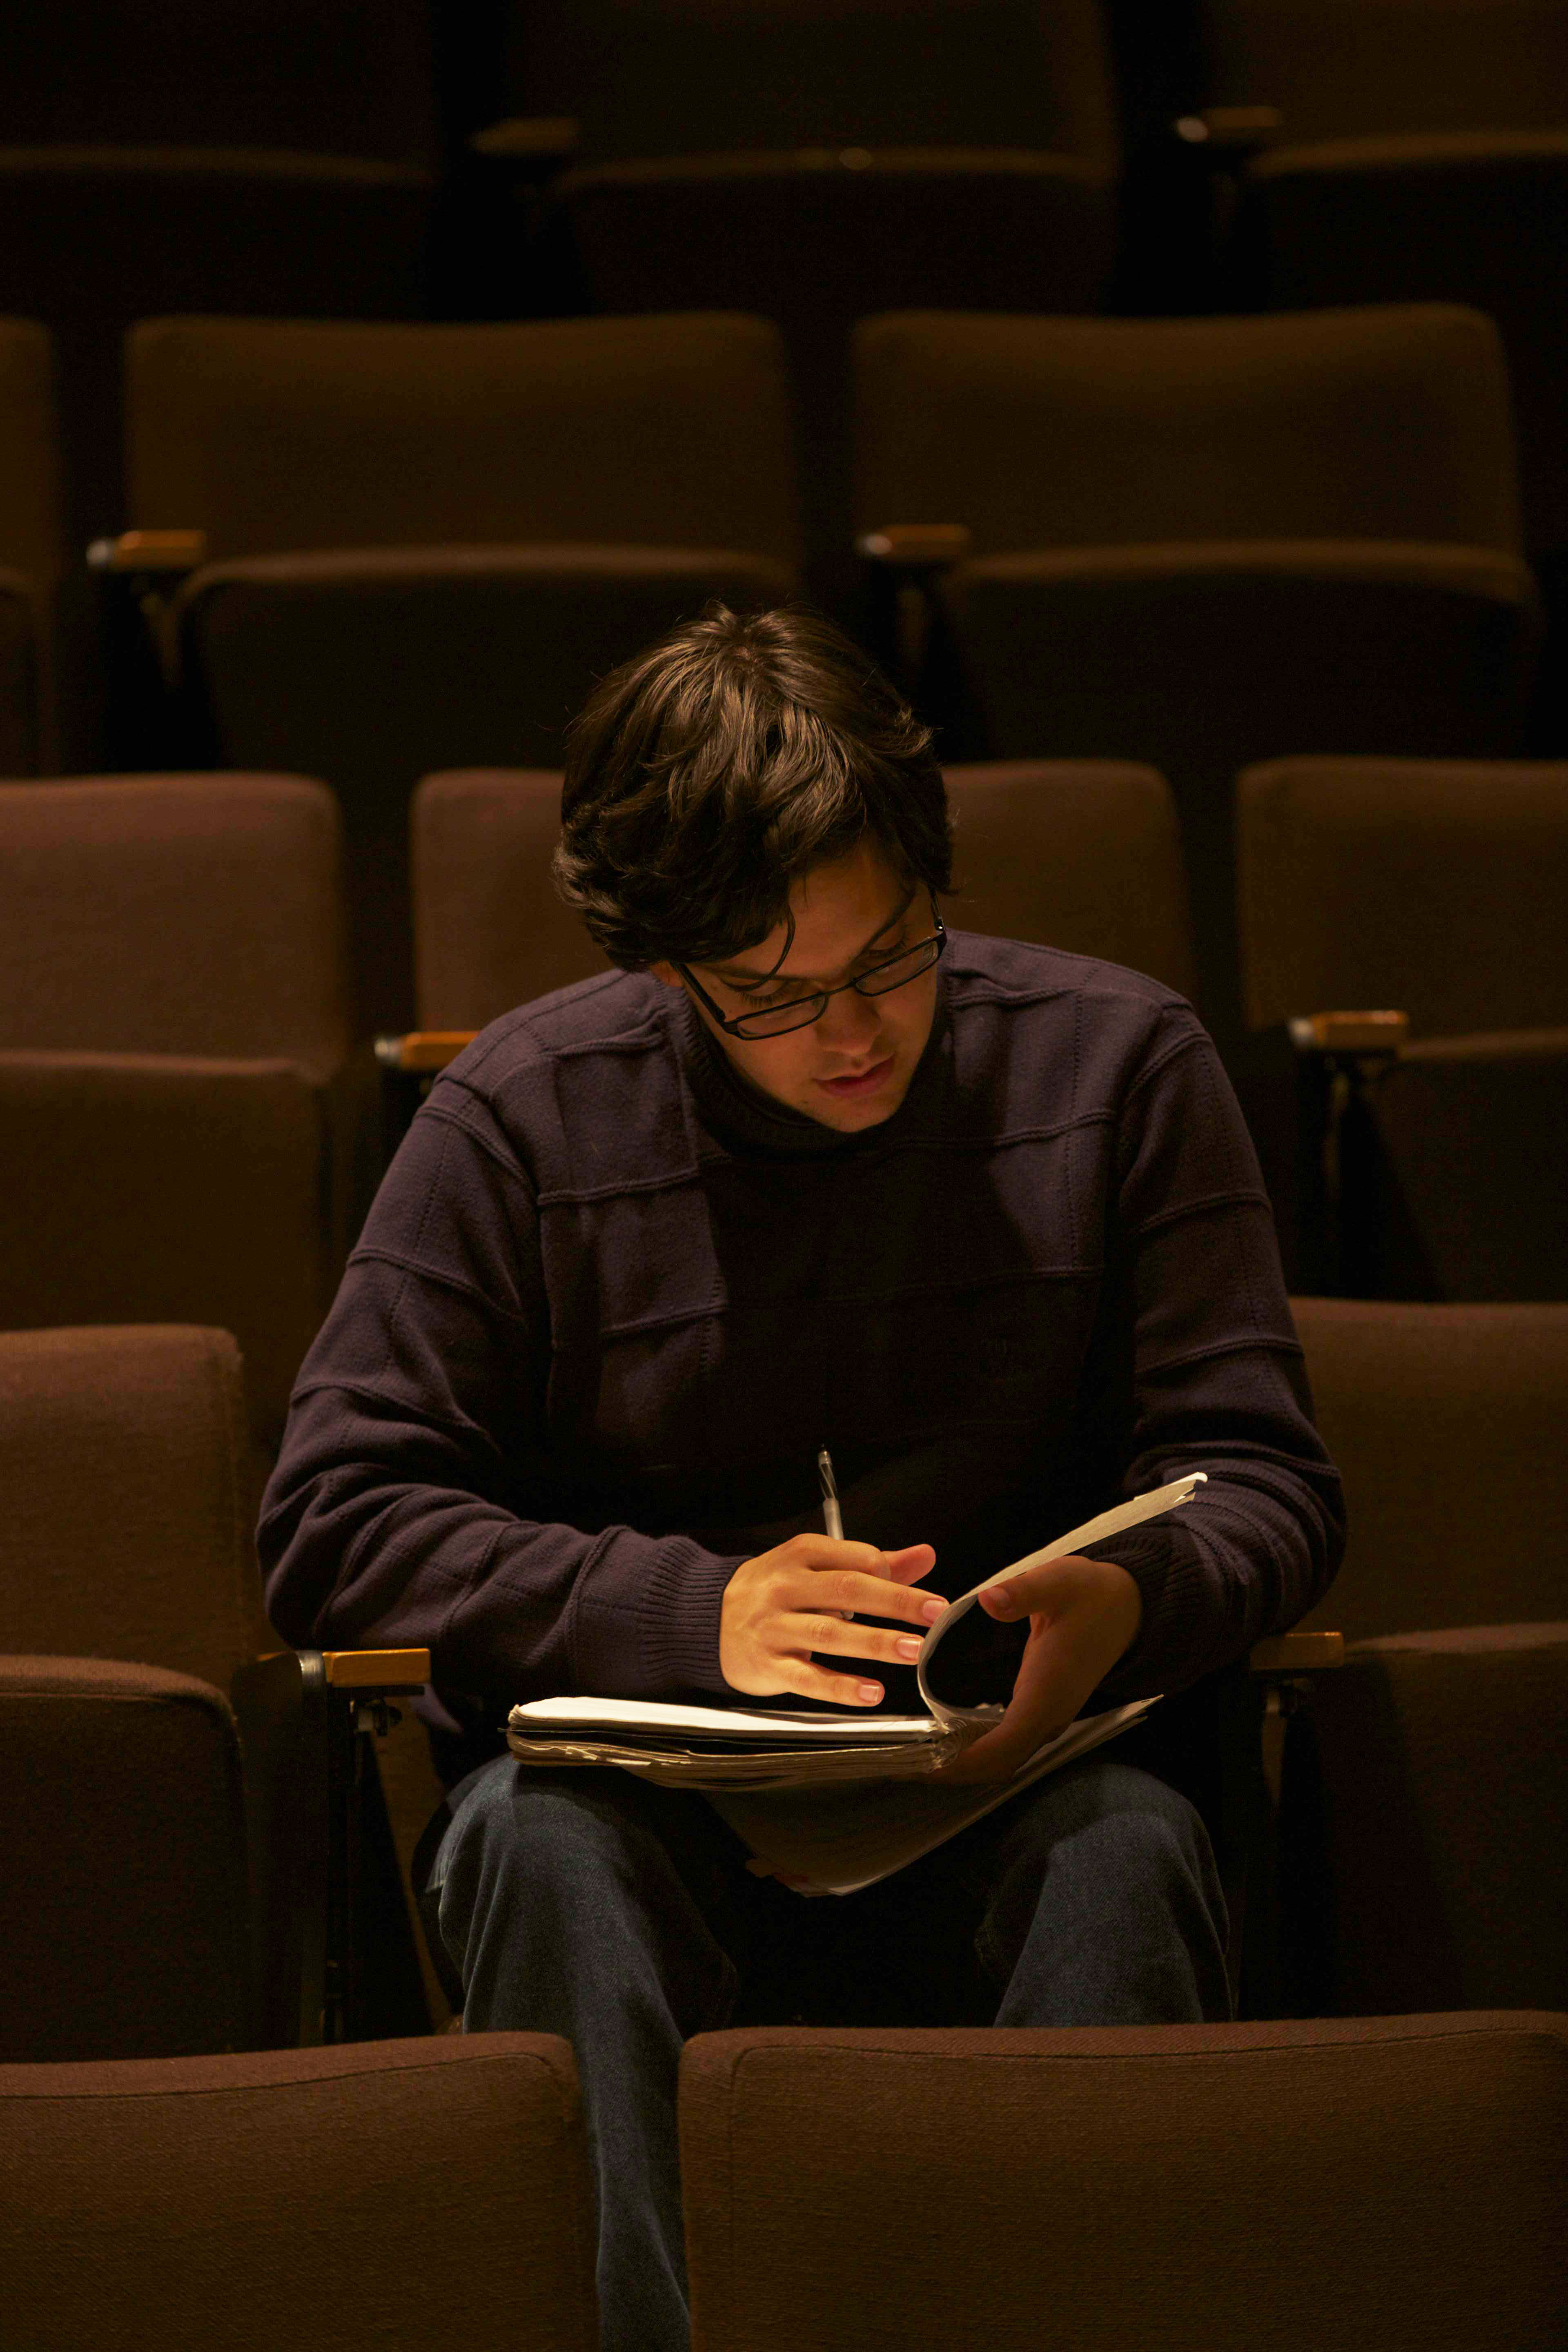 Nate Vader goes over his notes in an auditorium